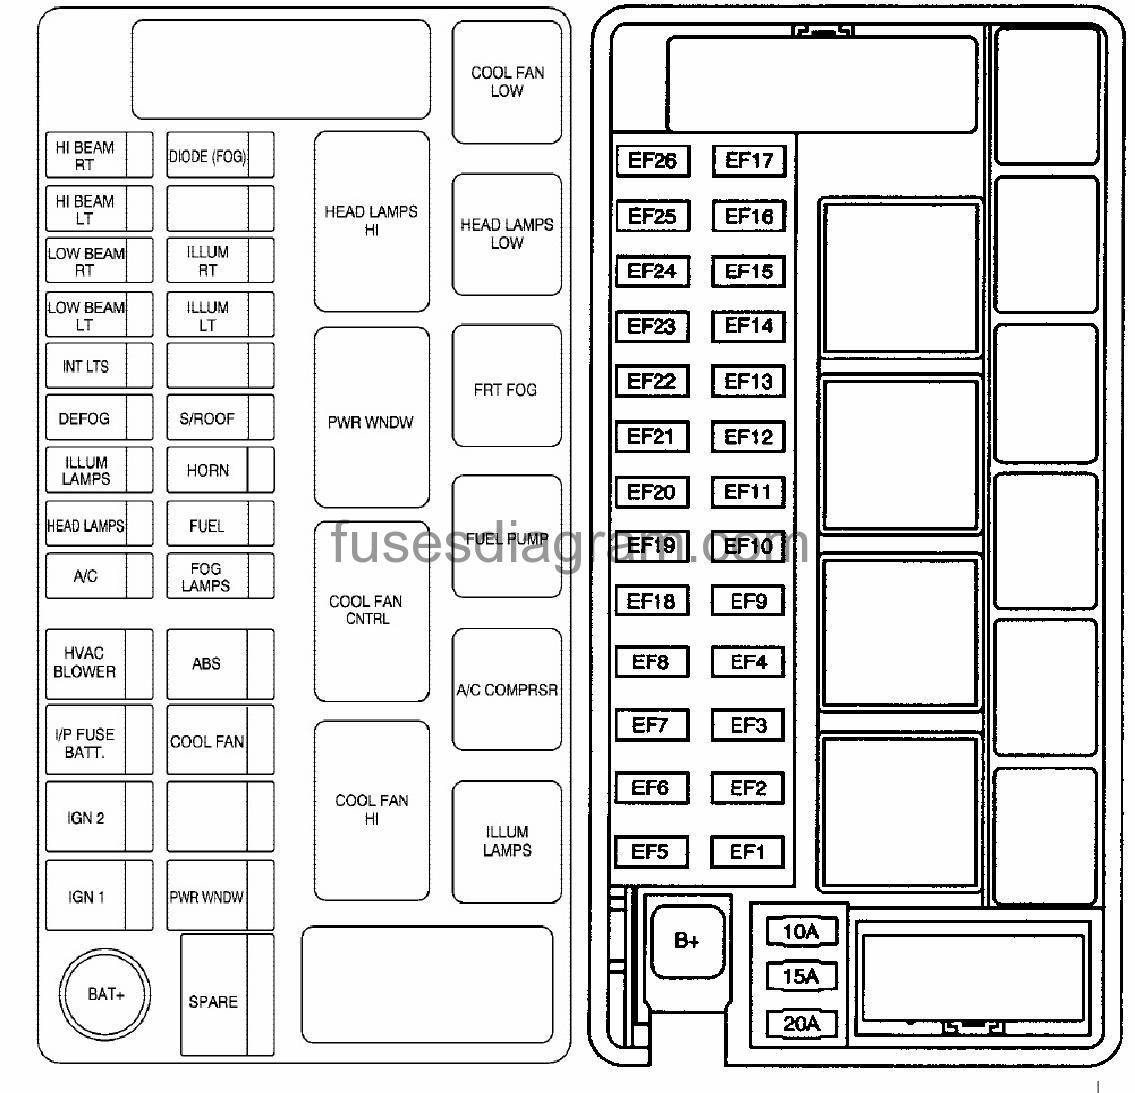 hight resolution of 2004 chevy aveo fuse box wiring diagram third level2004 chevrolet aveo fuse box diagram simple wiring